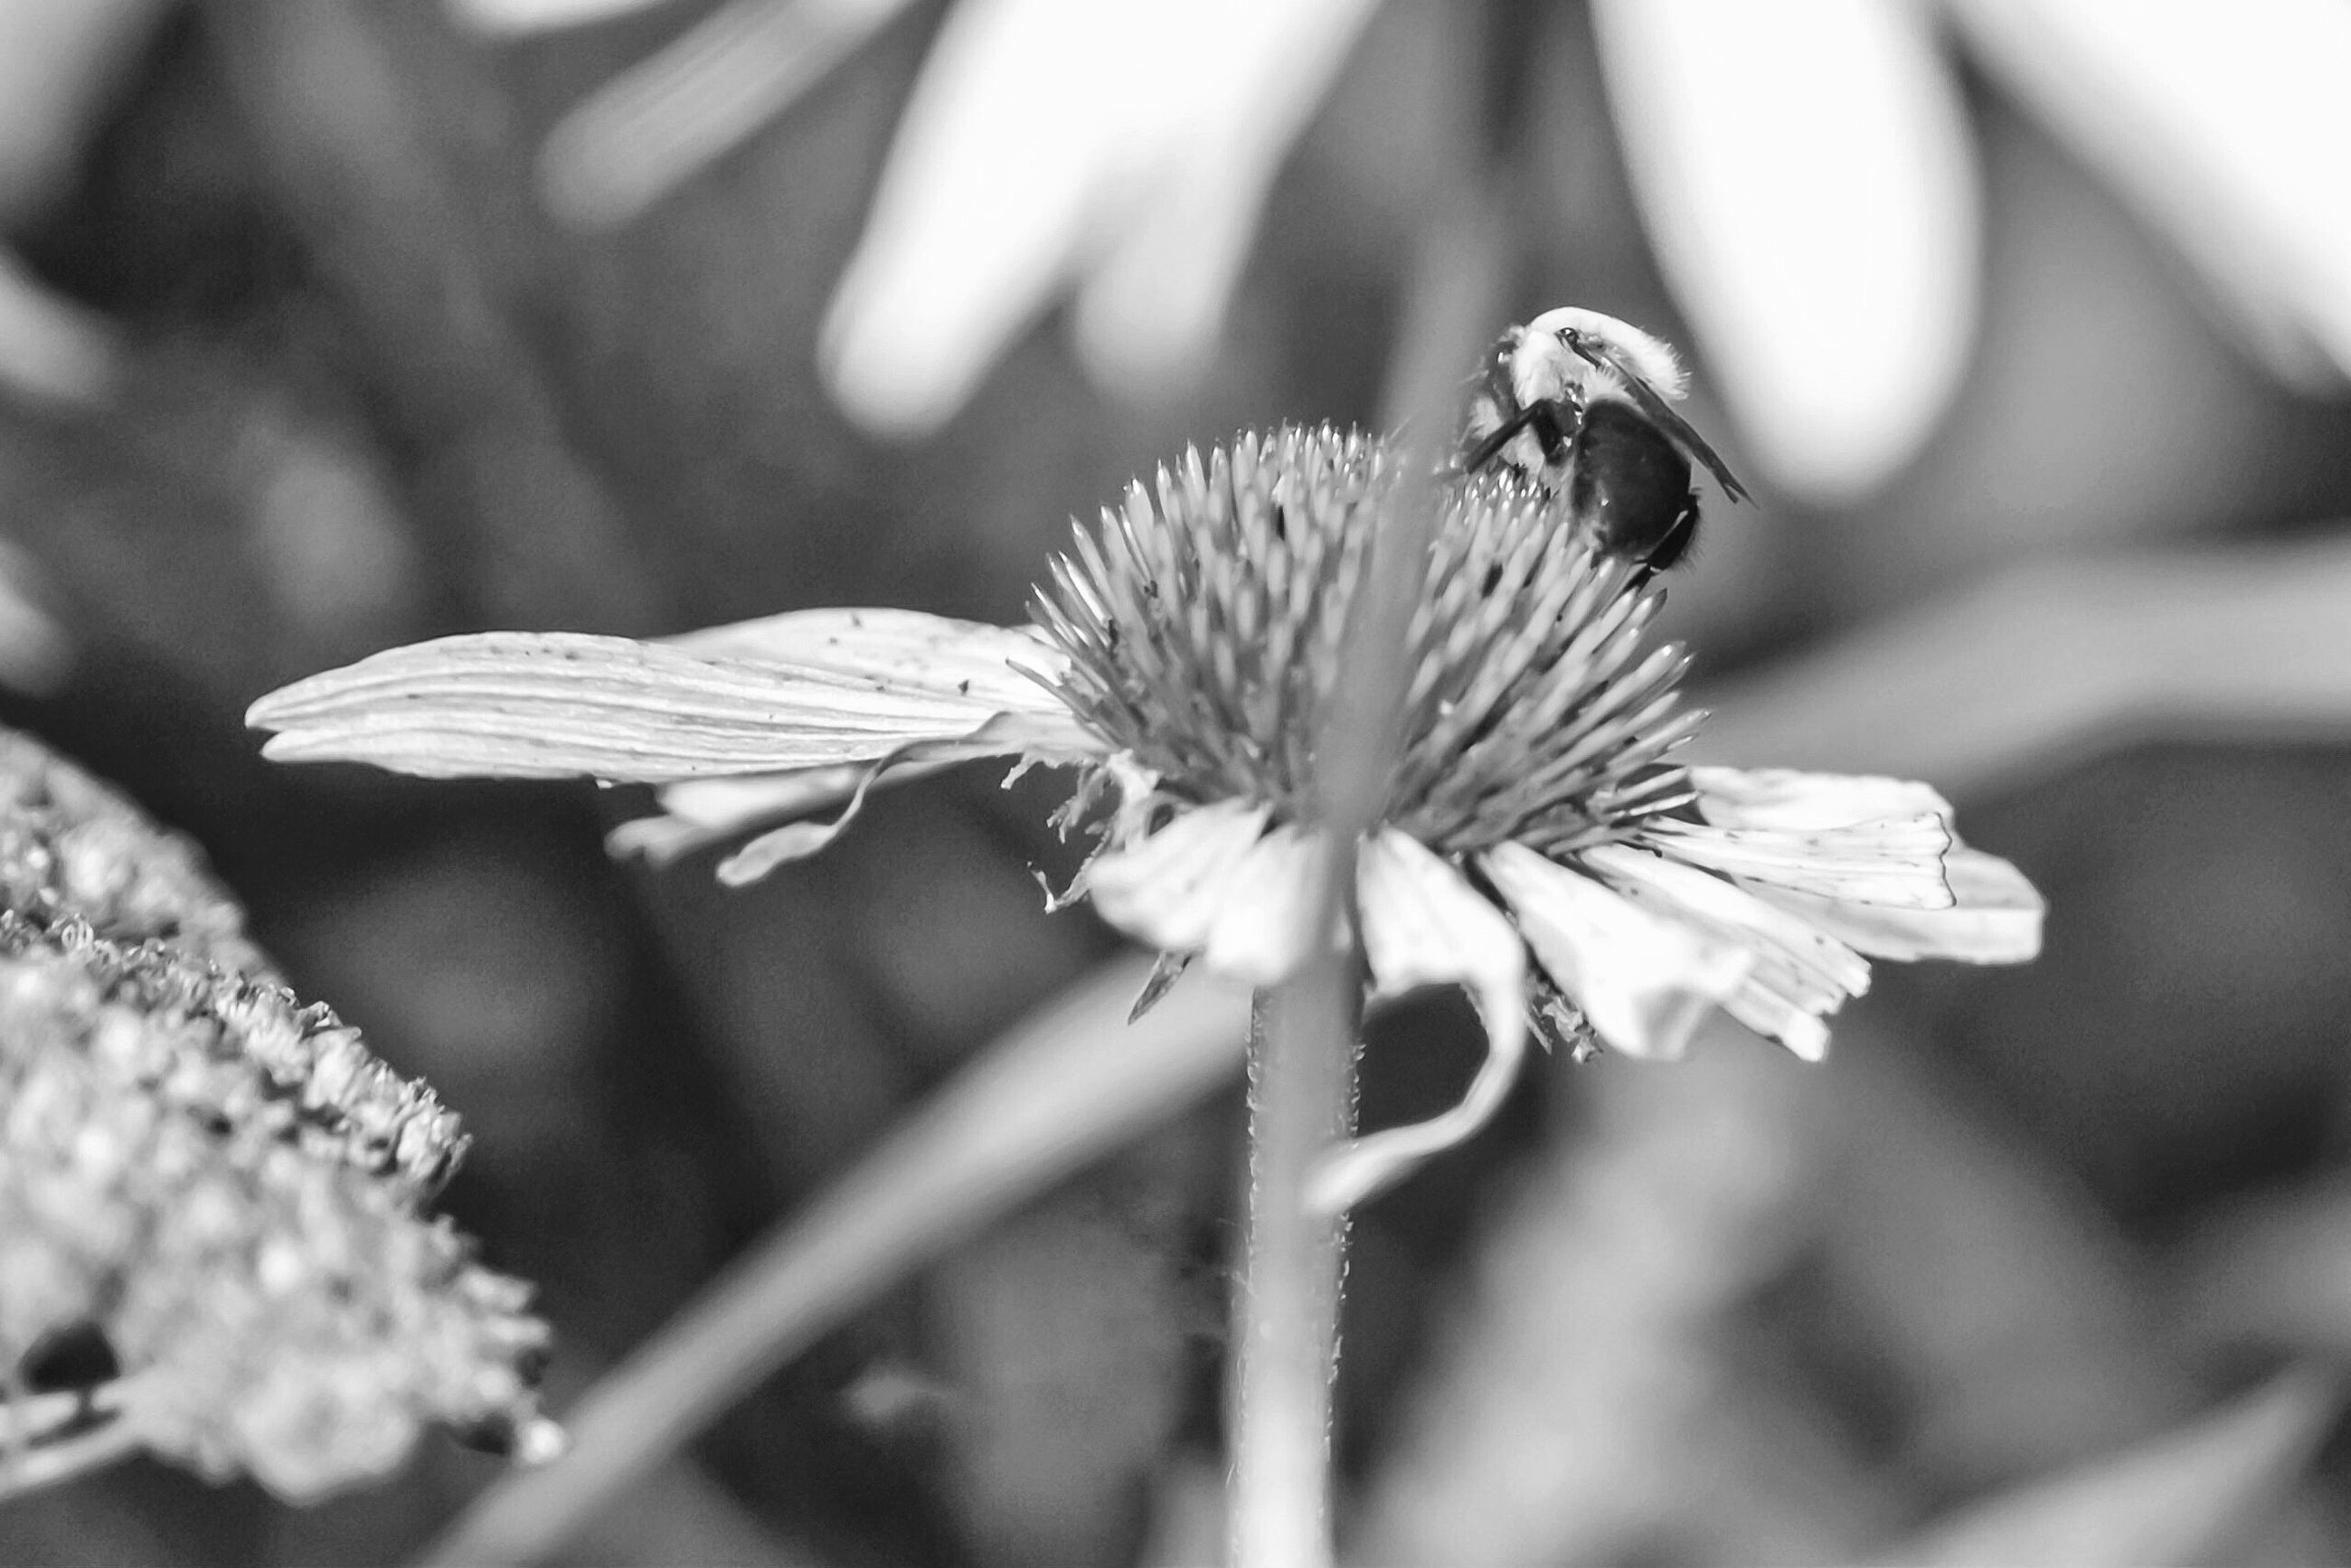 flower, fragility, growth, nature, petal, flower head, day, one animal, beauty in nature, plant, close-up, outdoors, insect, freshness, focus on foreground, no people, animals in the wild, animal themes, pollination, blooming